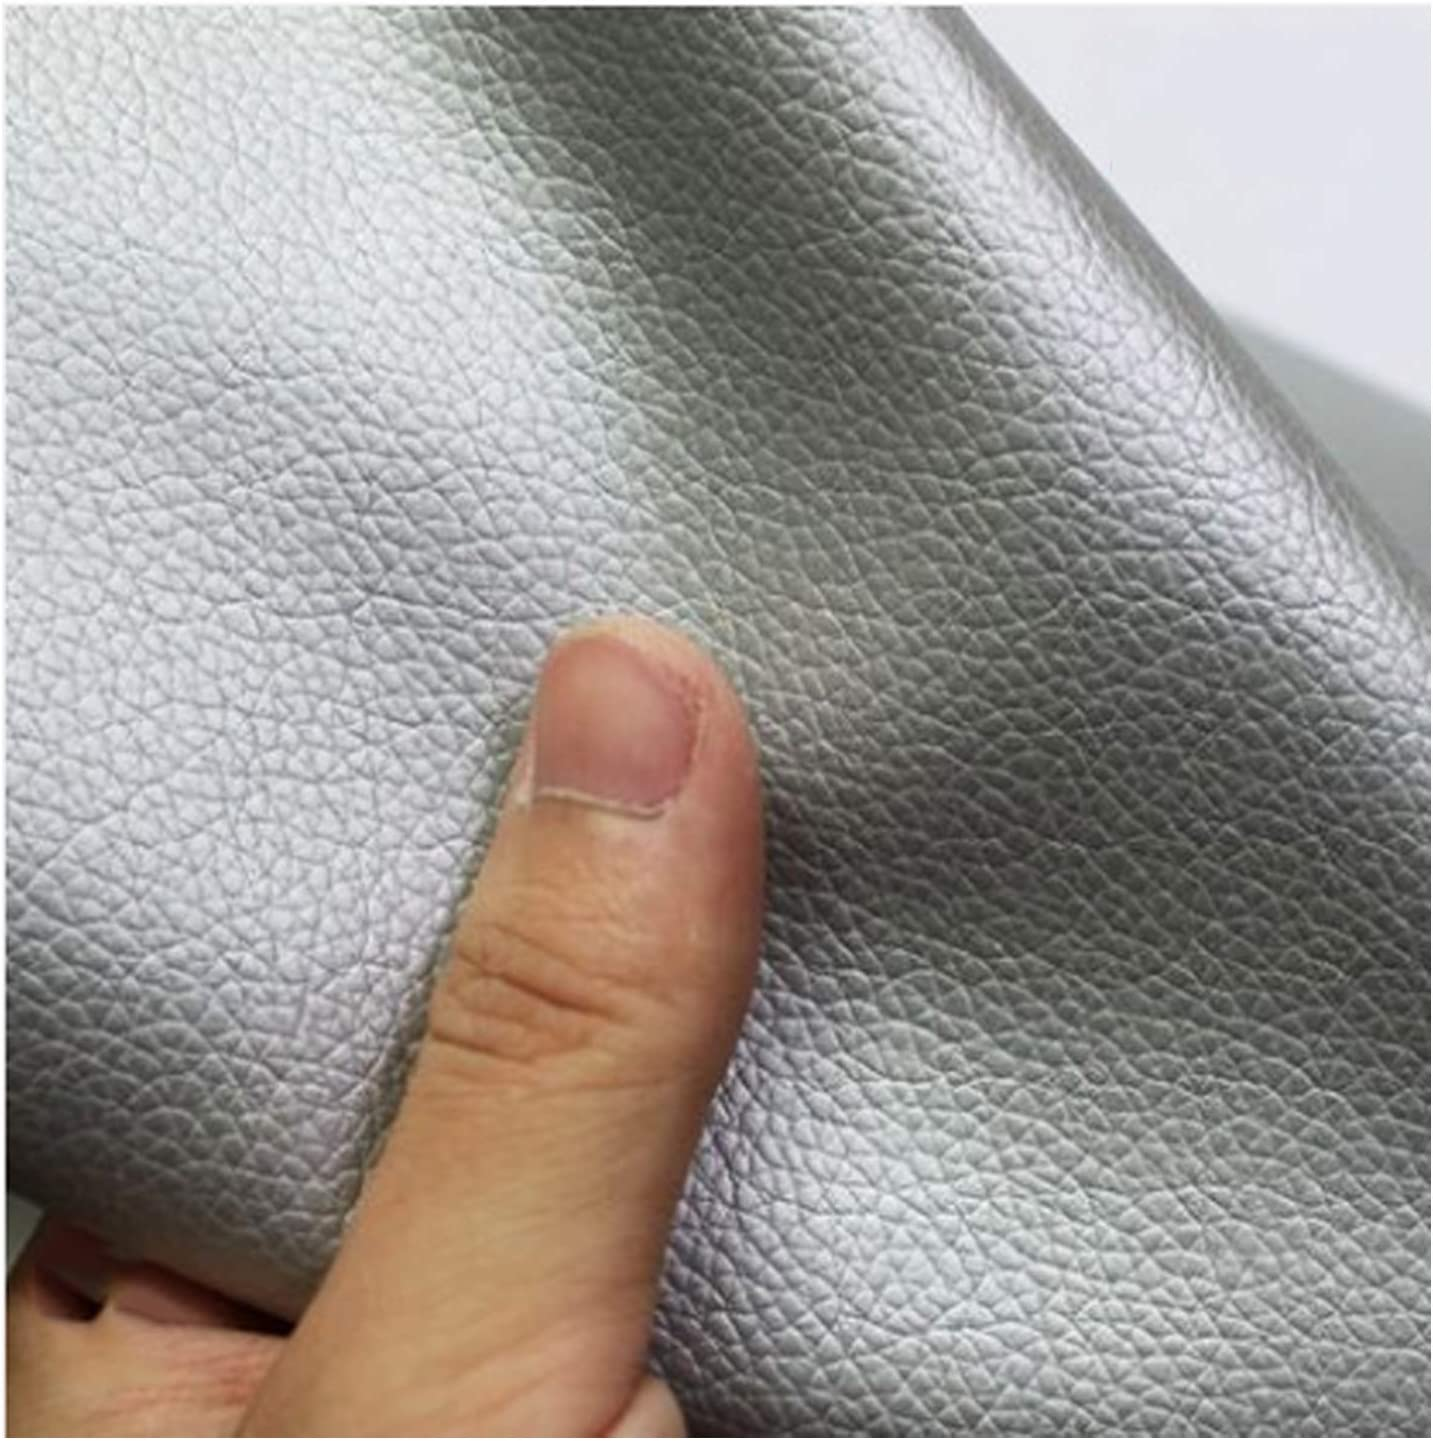 ZDFTCW Faux Many popular brands Suede Fabric Leather X - Half 70% OFF Outlet Metre 50cm